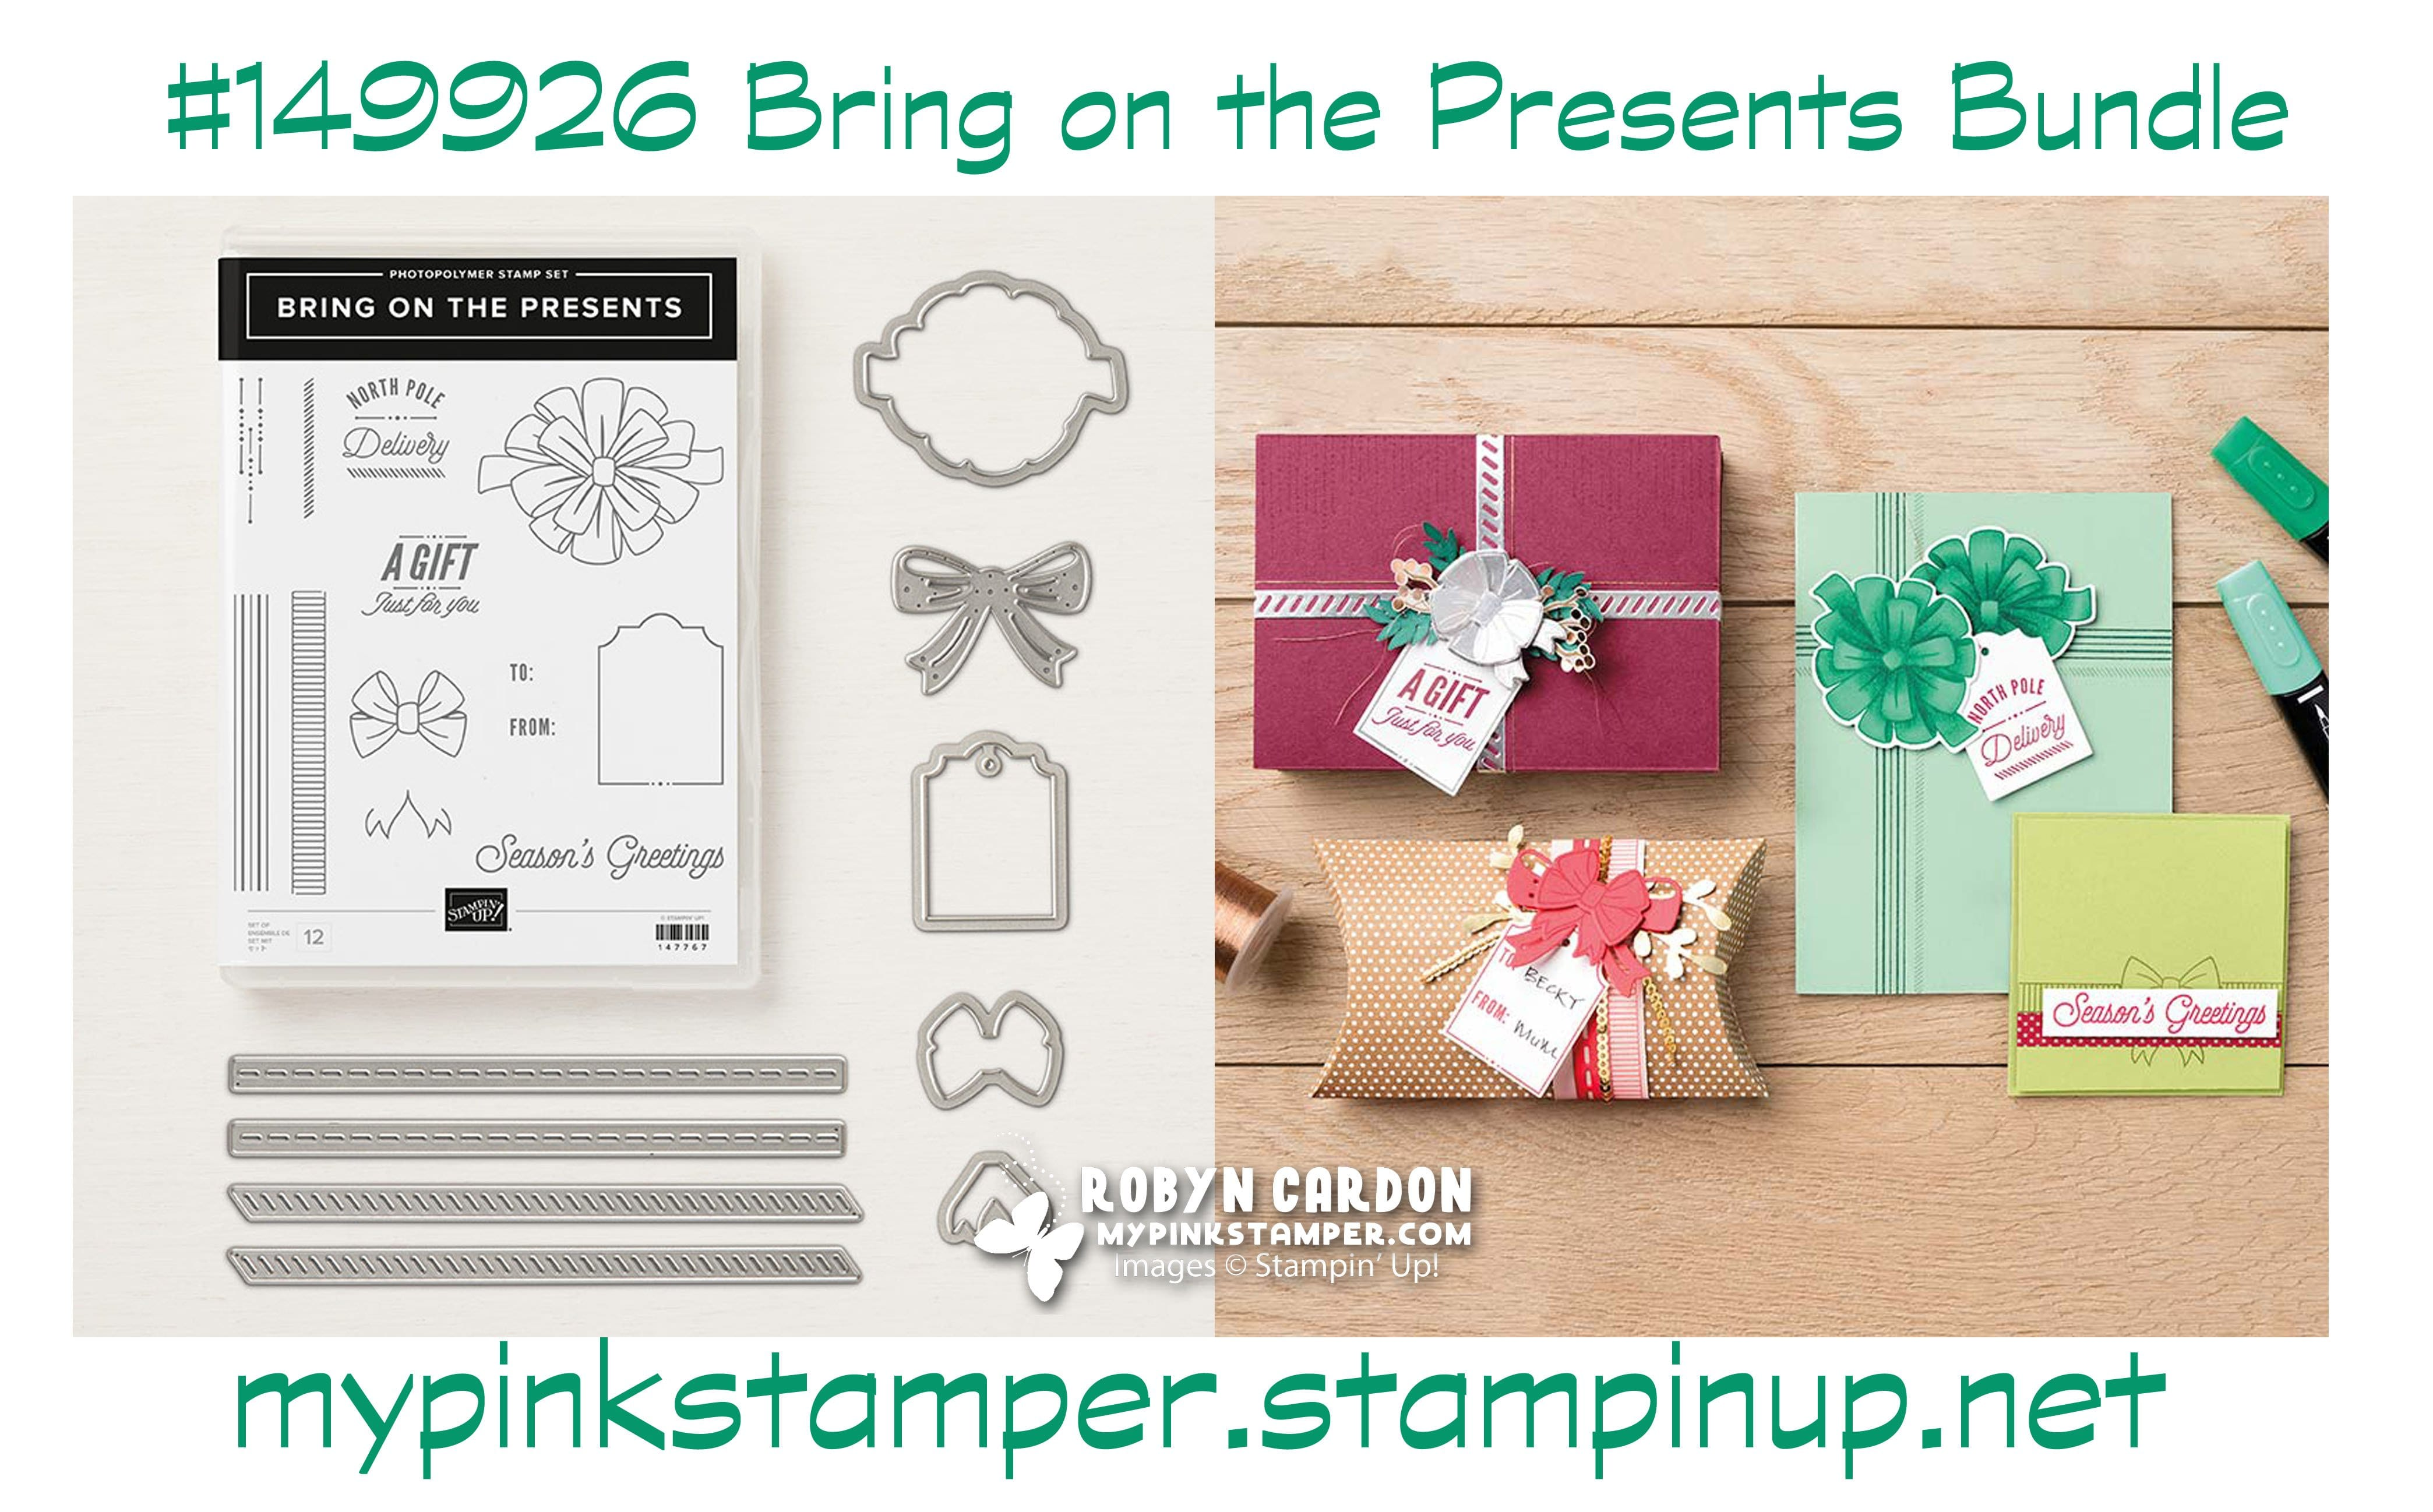 Blog-tober Day 7 Giveaway & Winners!  Spotlight on Stampin' Up! Bring on the Presents Bundle